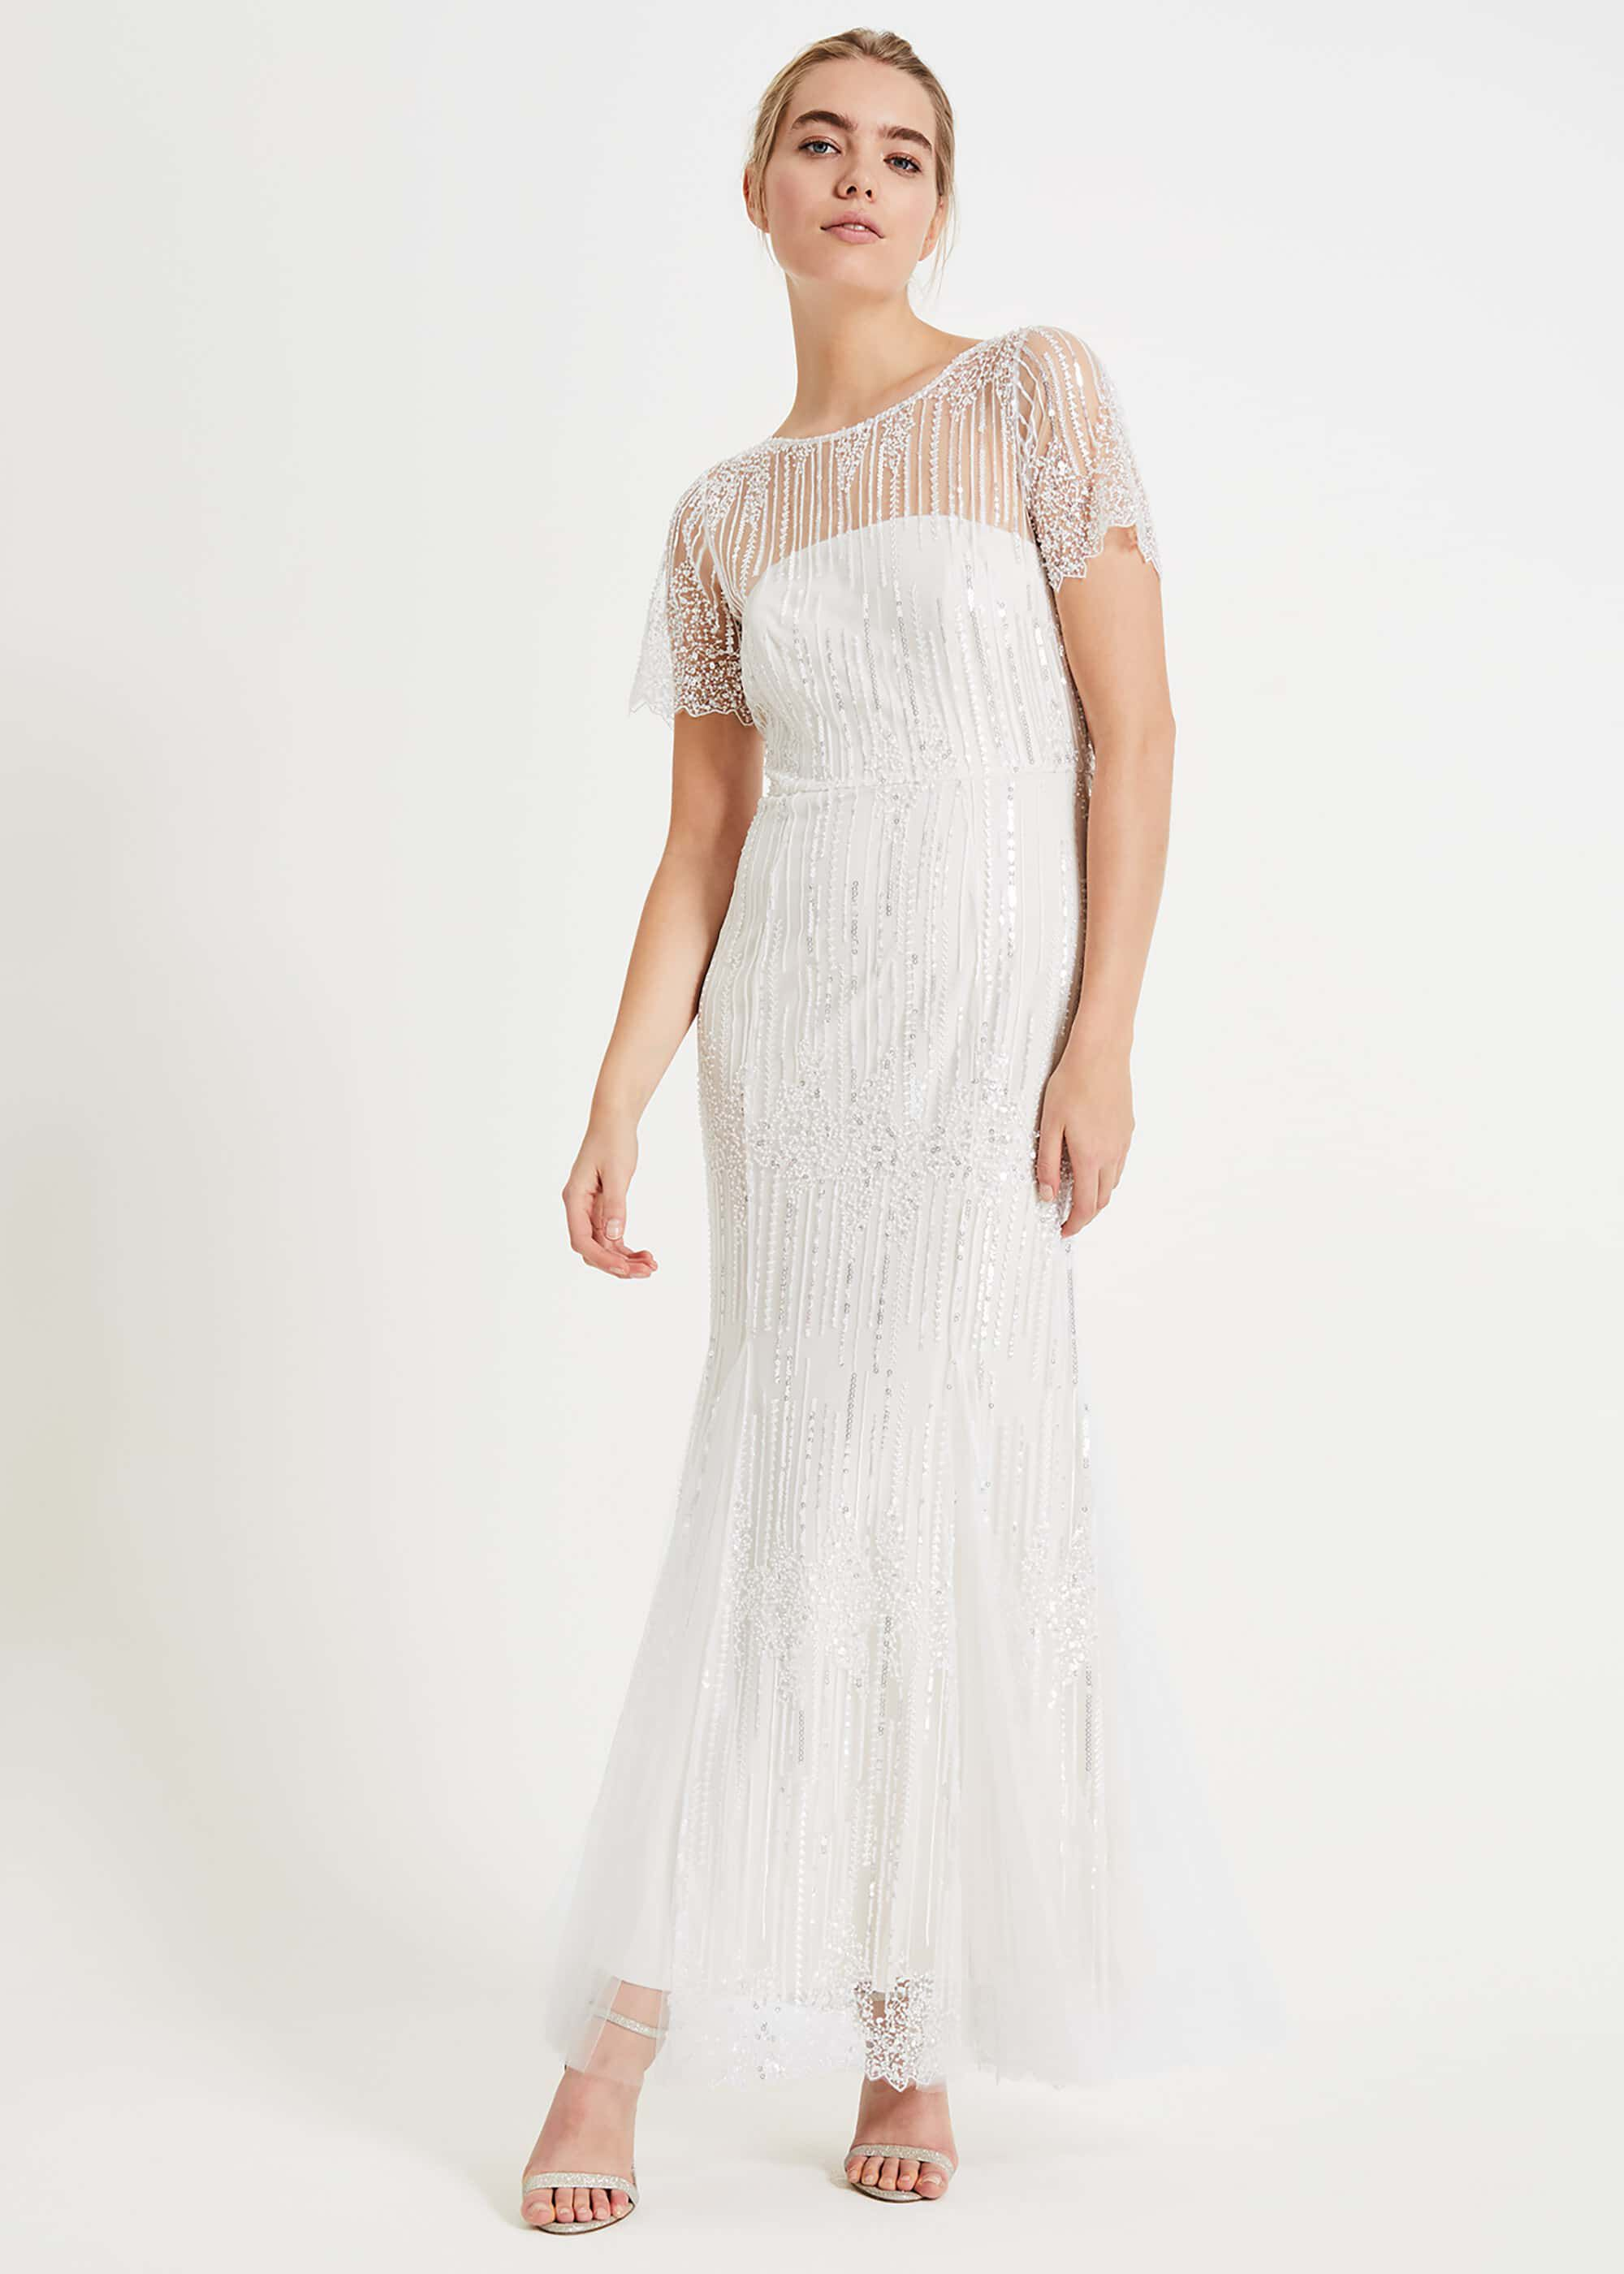 Vintage Style Wedding Dresses, Vintage Inspired Wedding Gowns Phase Eight Leonora Sequin Embroidered Bridal Dress Neutral Maxi £495.00 AT vintagedancer.com